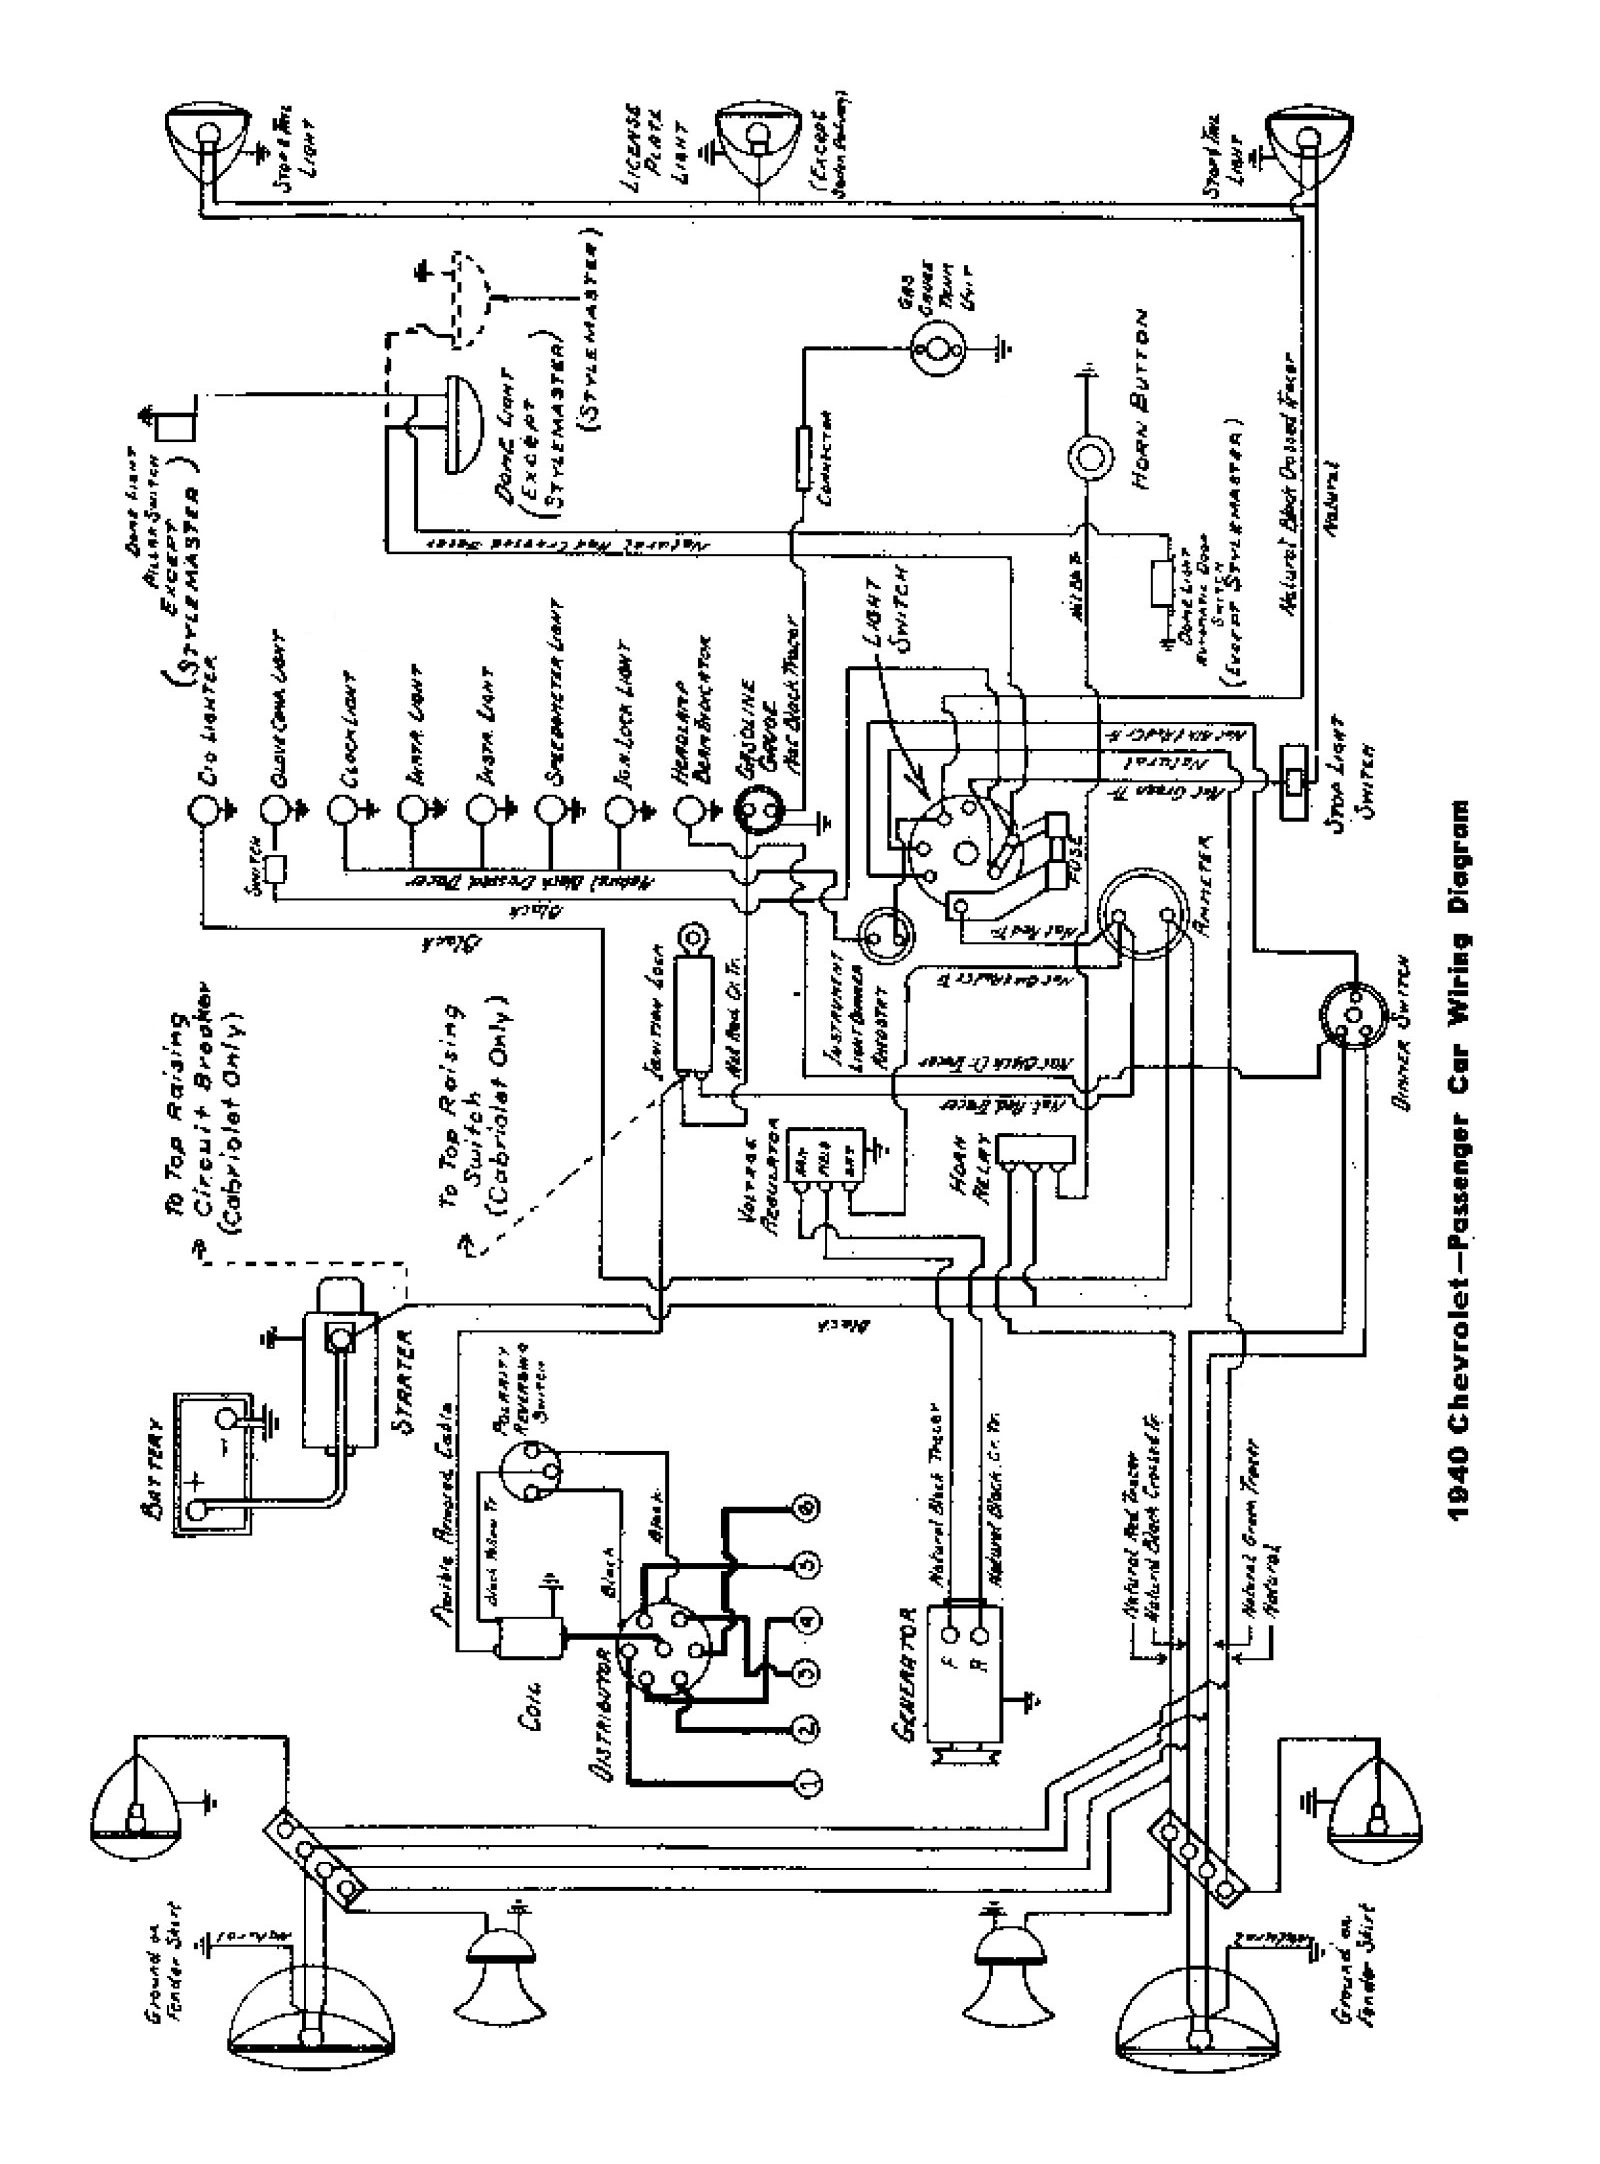 40car?resize=665%2C899 ford 3600 ignition switch wiring diagram the best wiring diagram ford 3600 tractor ignition switch wiring diagram at bayanpartner.co